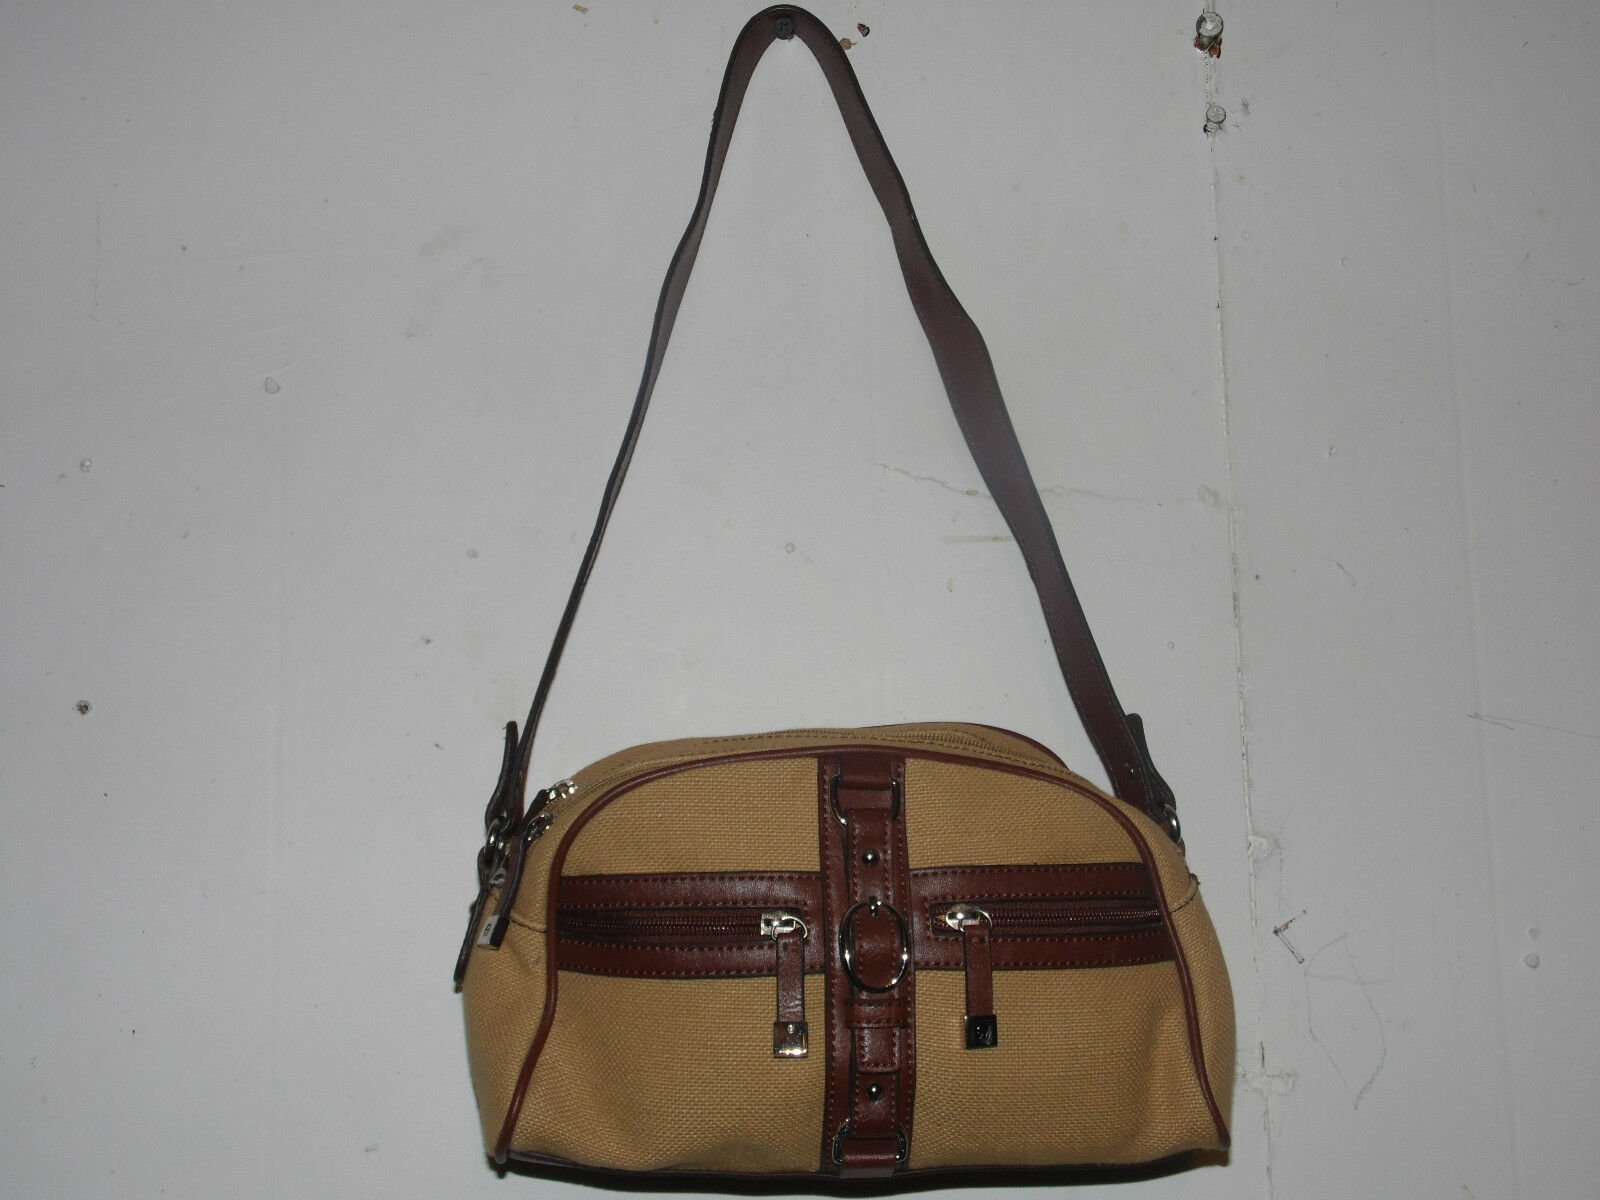 Etienne Aigner Over Shoulder Purse 3 Compartment Hand Bag Leather Cloth - $29.69